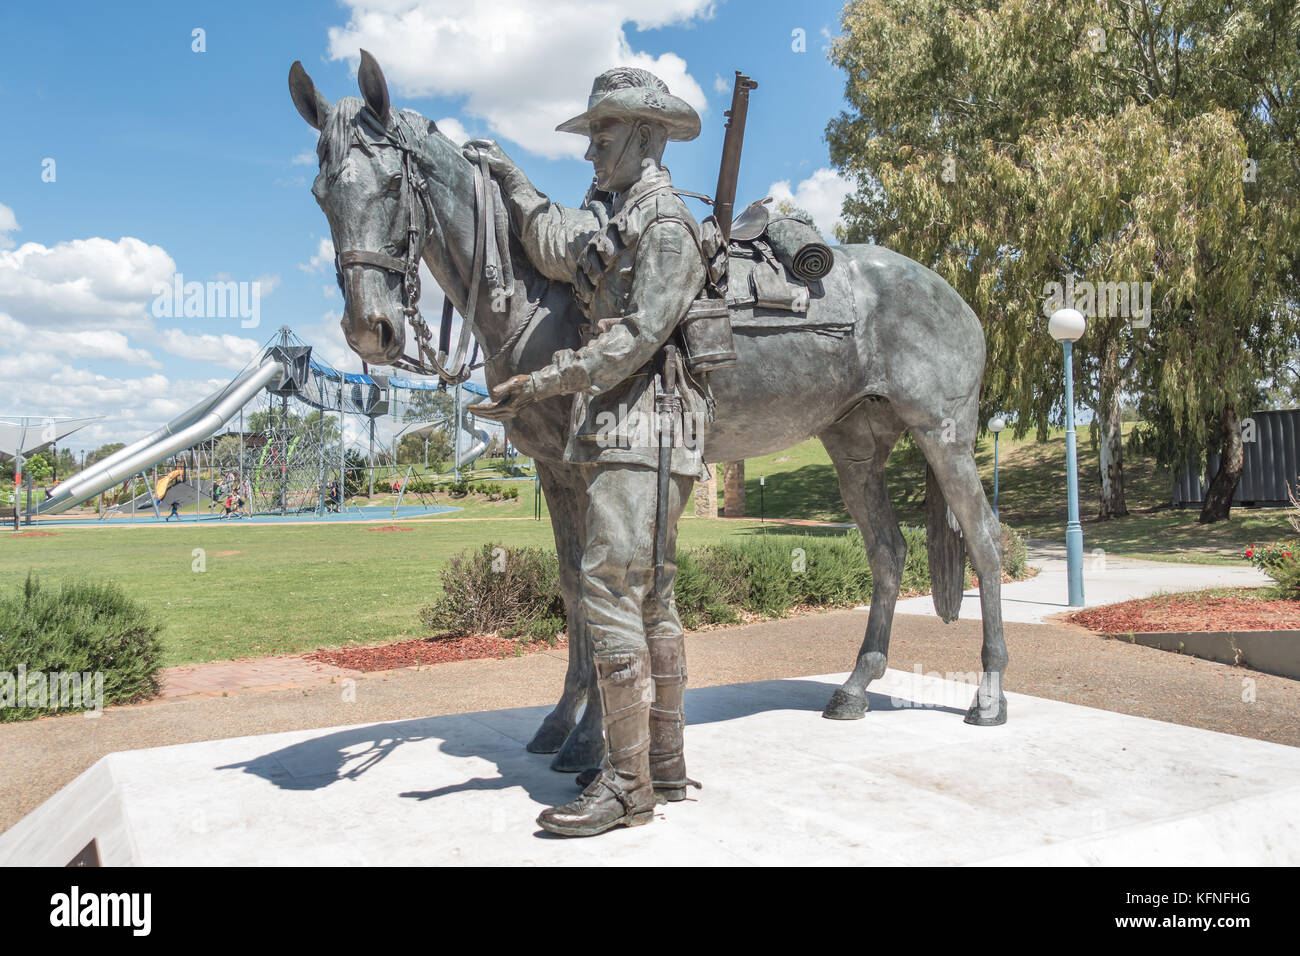 A Memorial to the Australian Light Horse, the Troopers and their Waler horses most famously used in the Light Horse Stock Photo